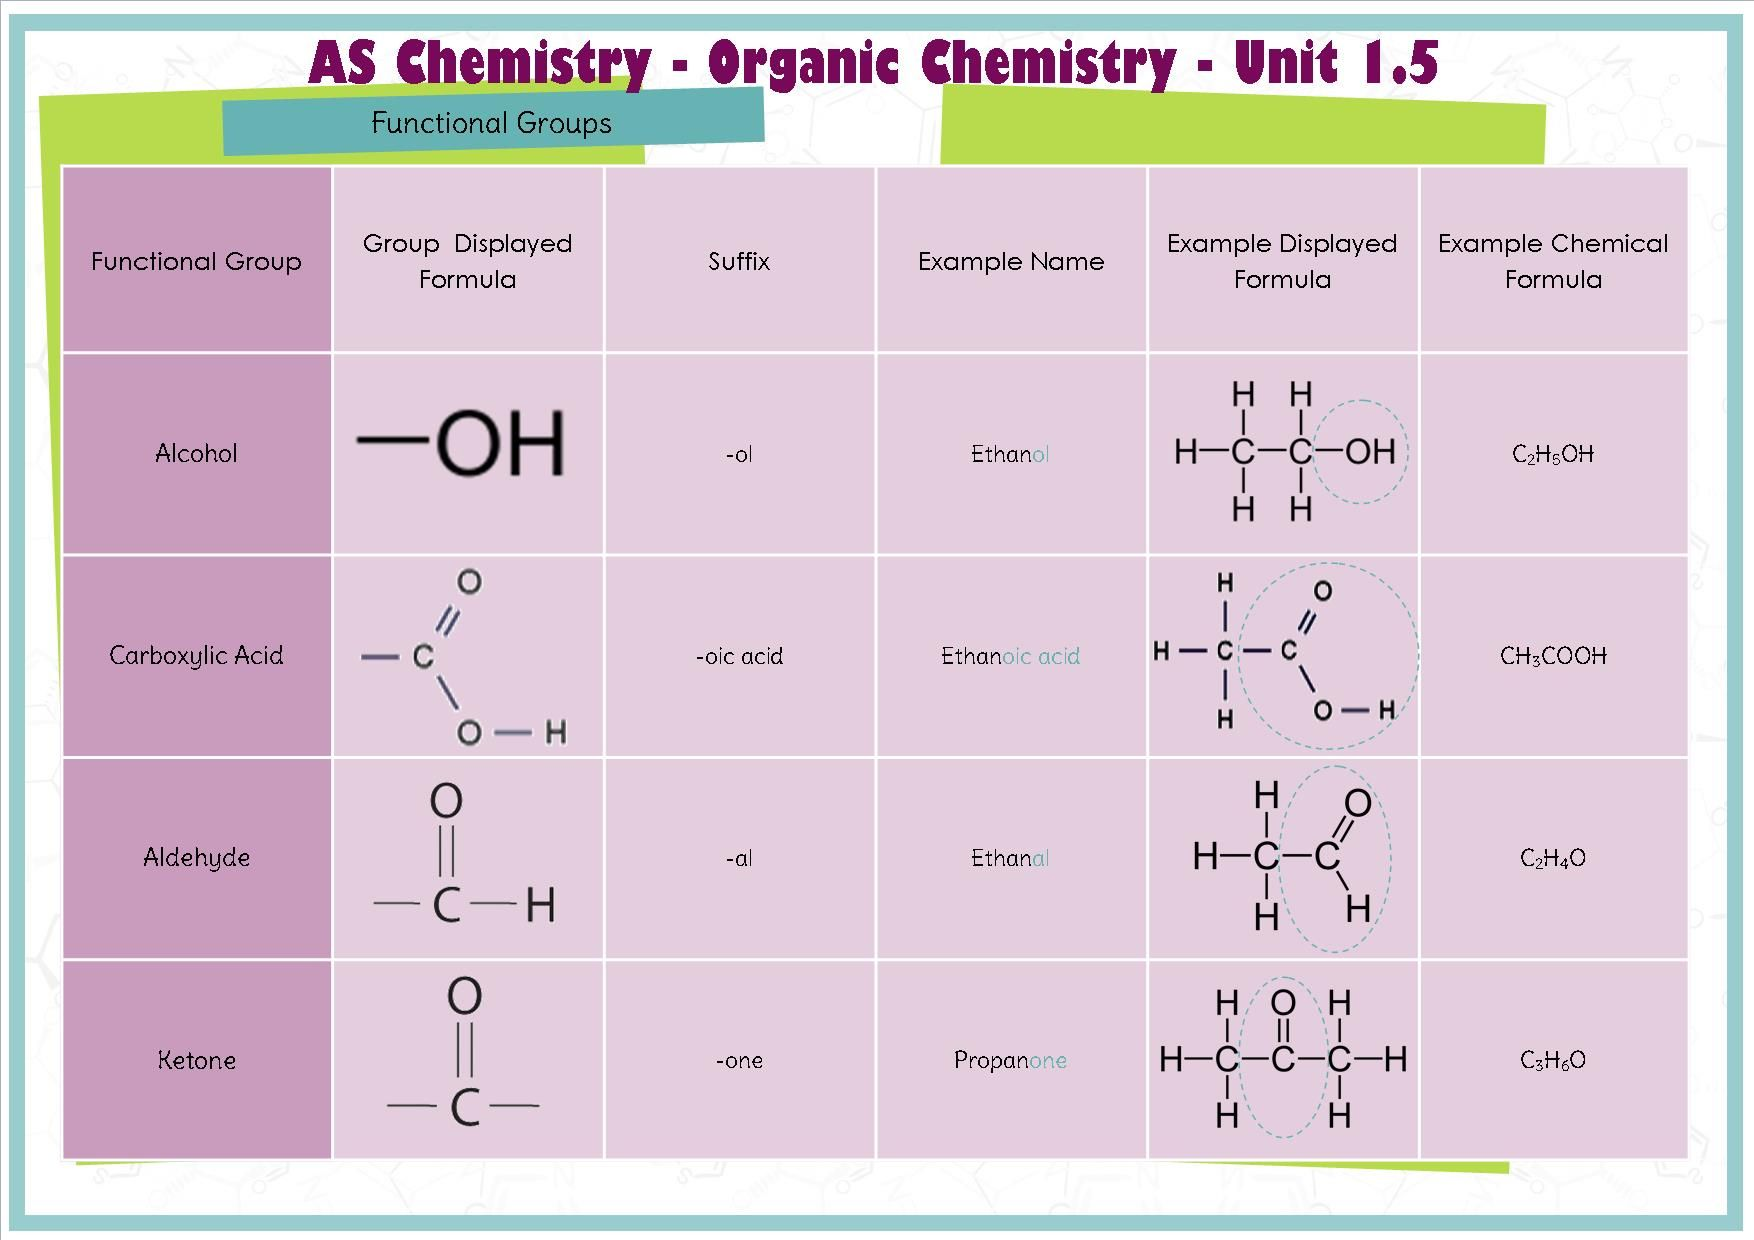 As Chemistry Functional Groups